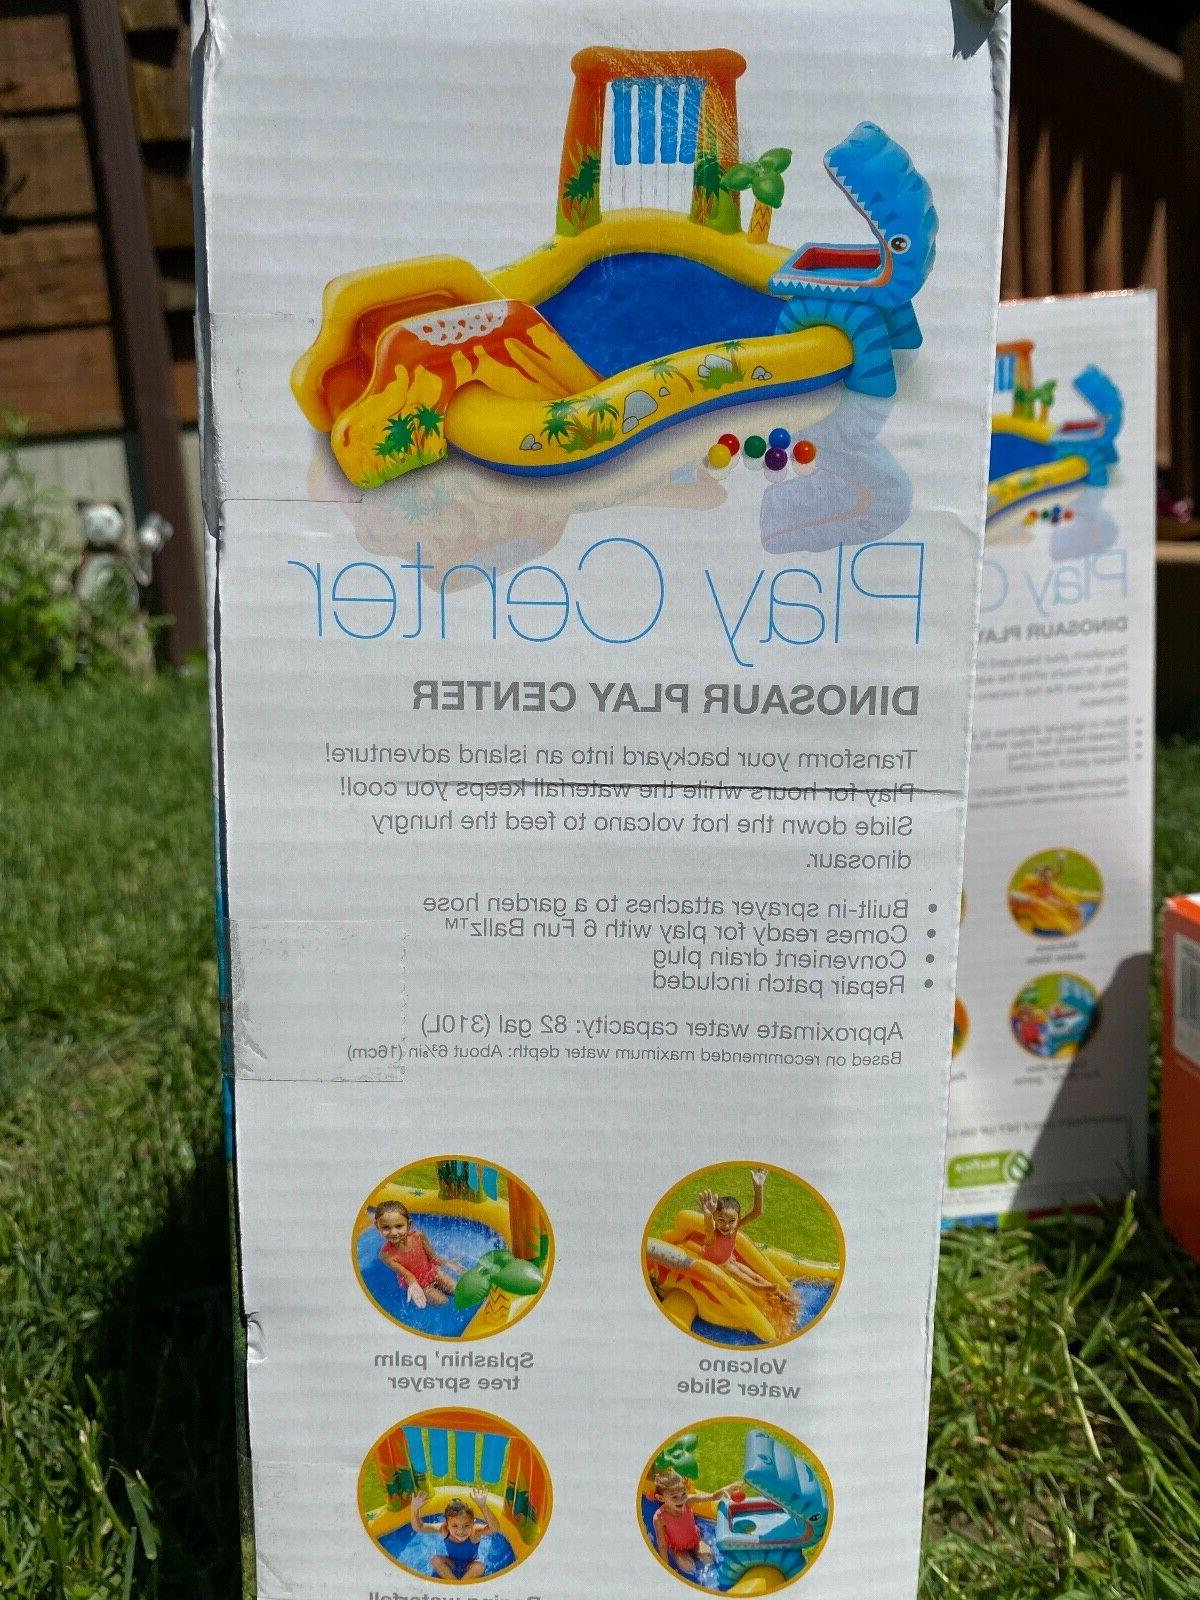 Intex Inflatable BRAND NEW FREE SHIPPING